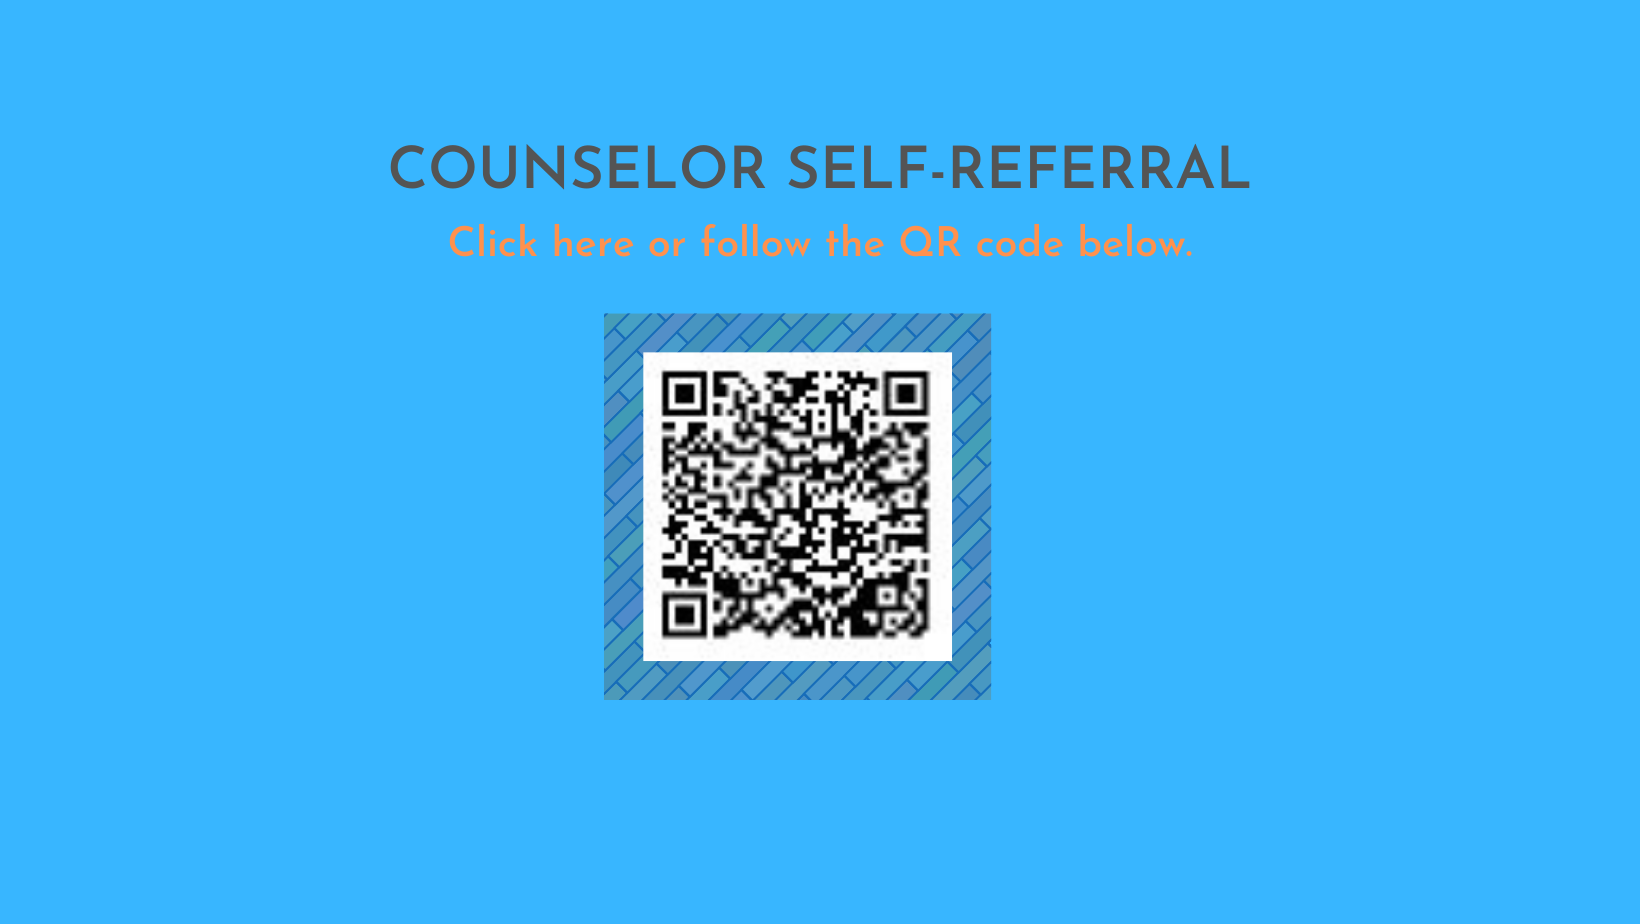 counselor self-referral